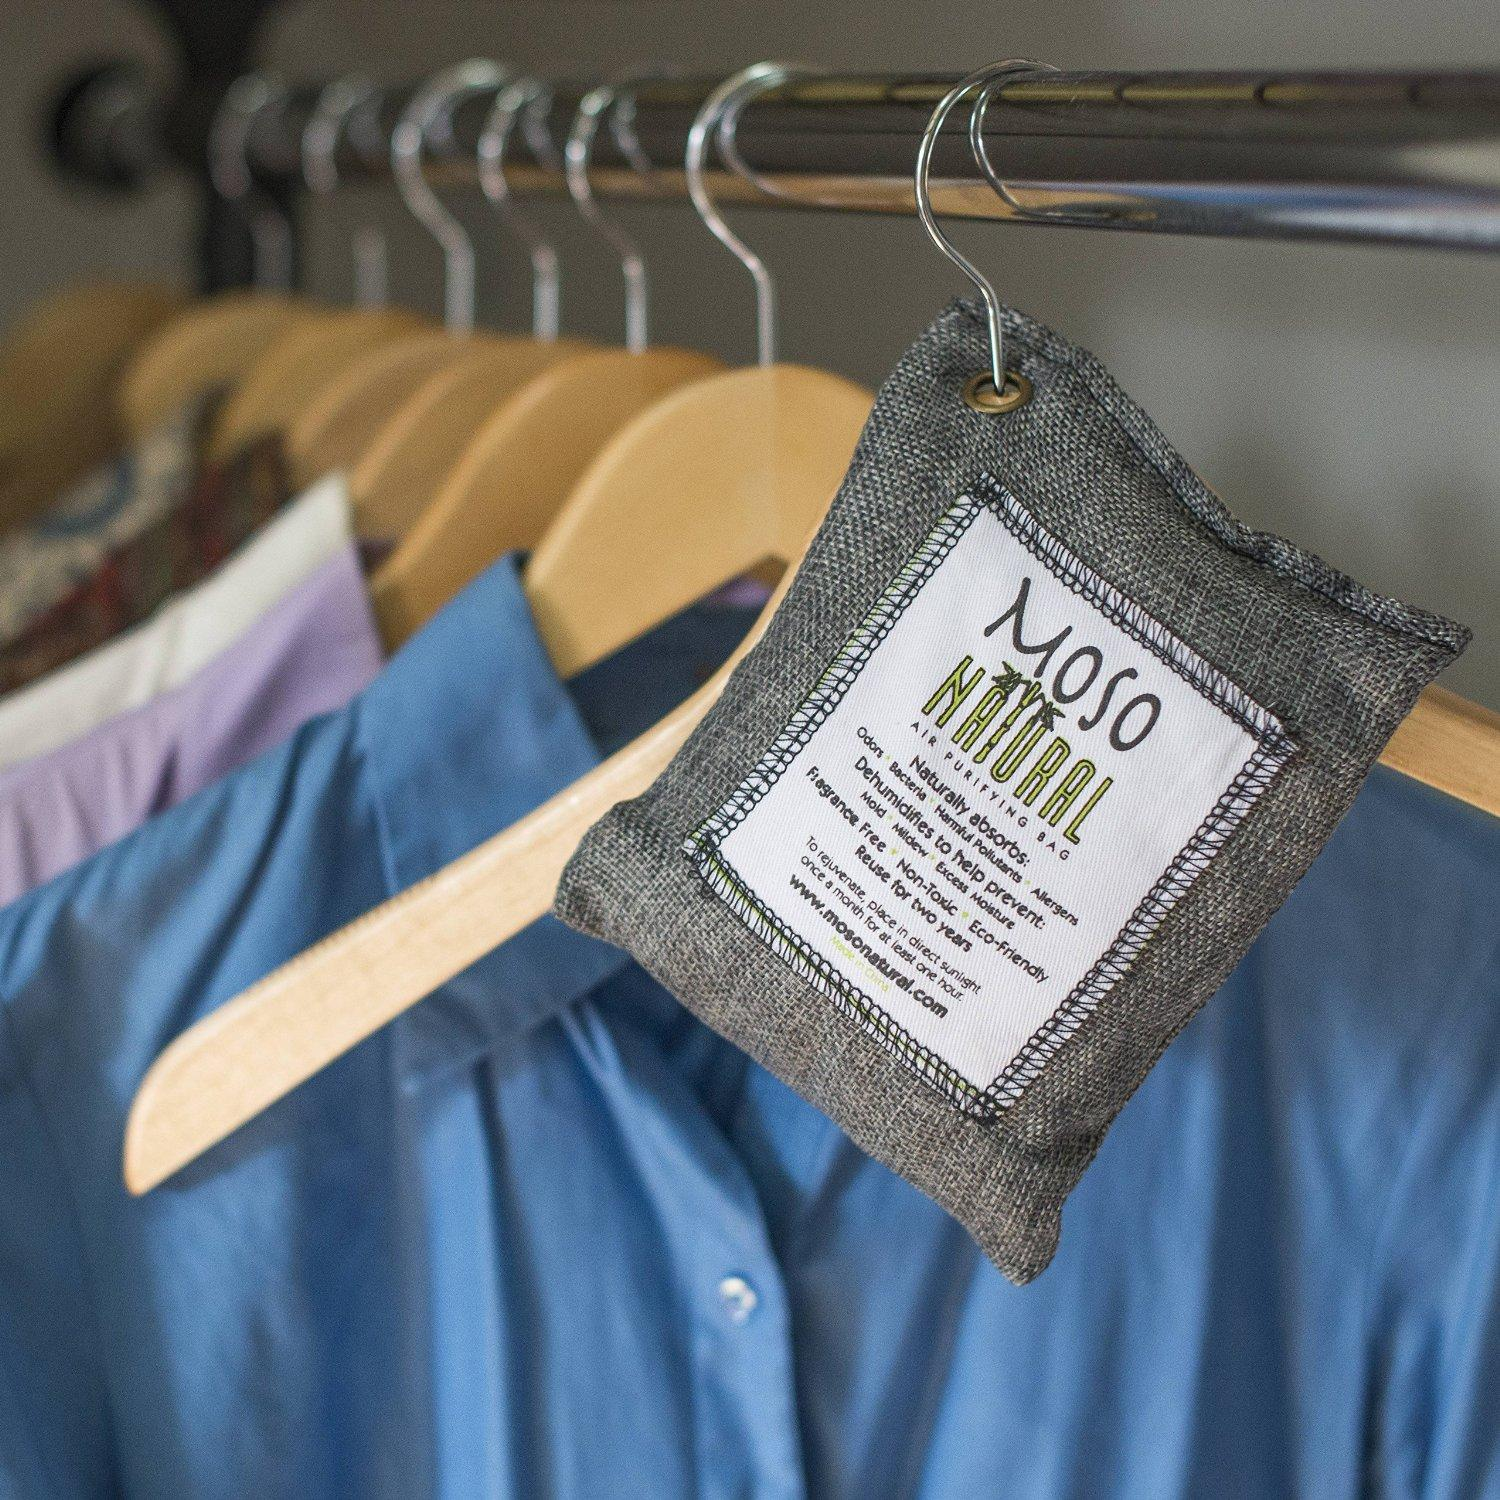 Moso Natural Air Purifying Bag 200g.